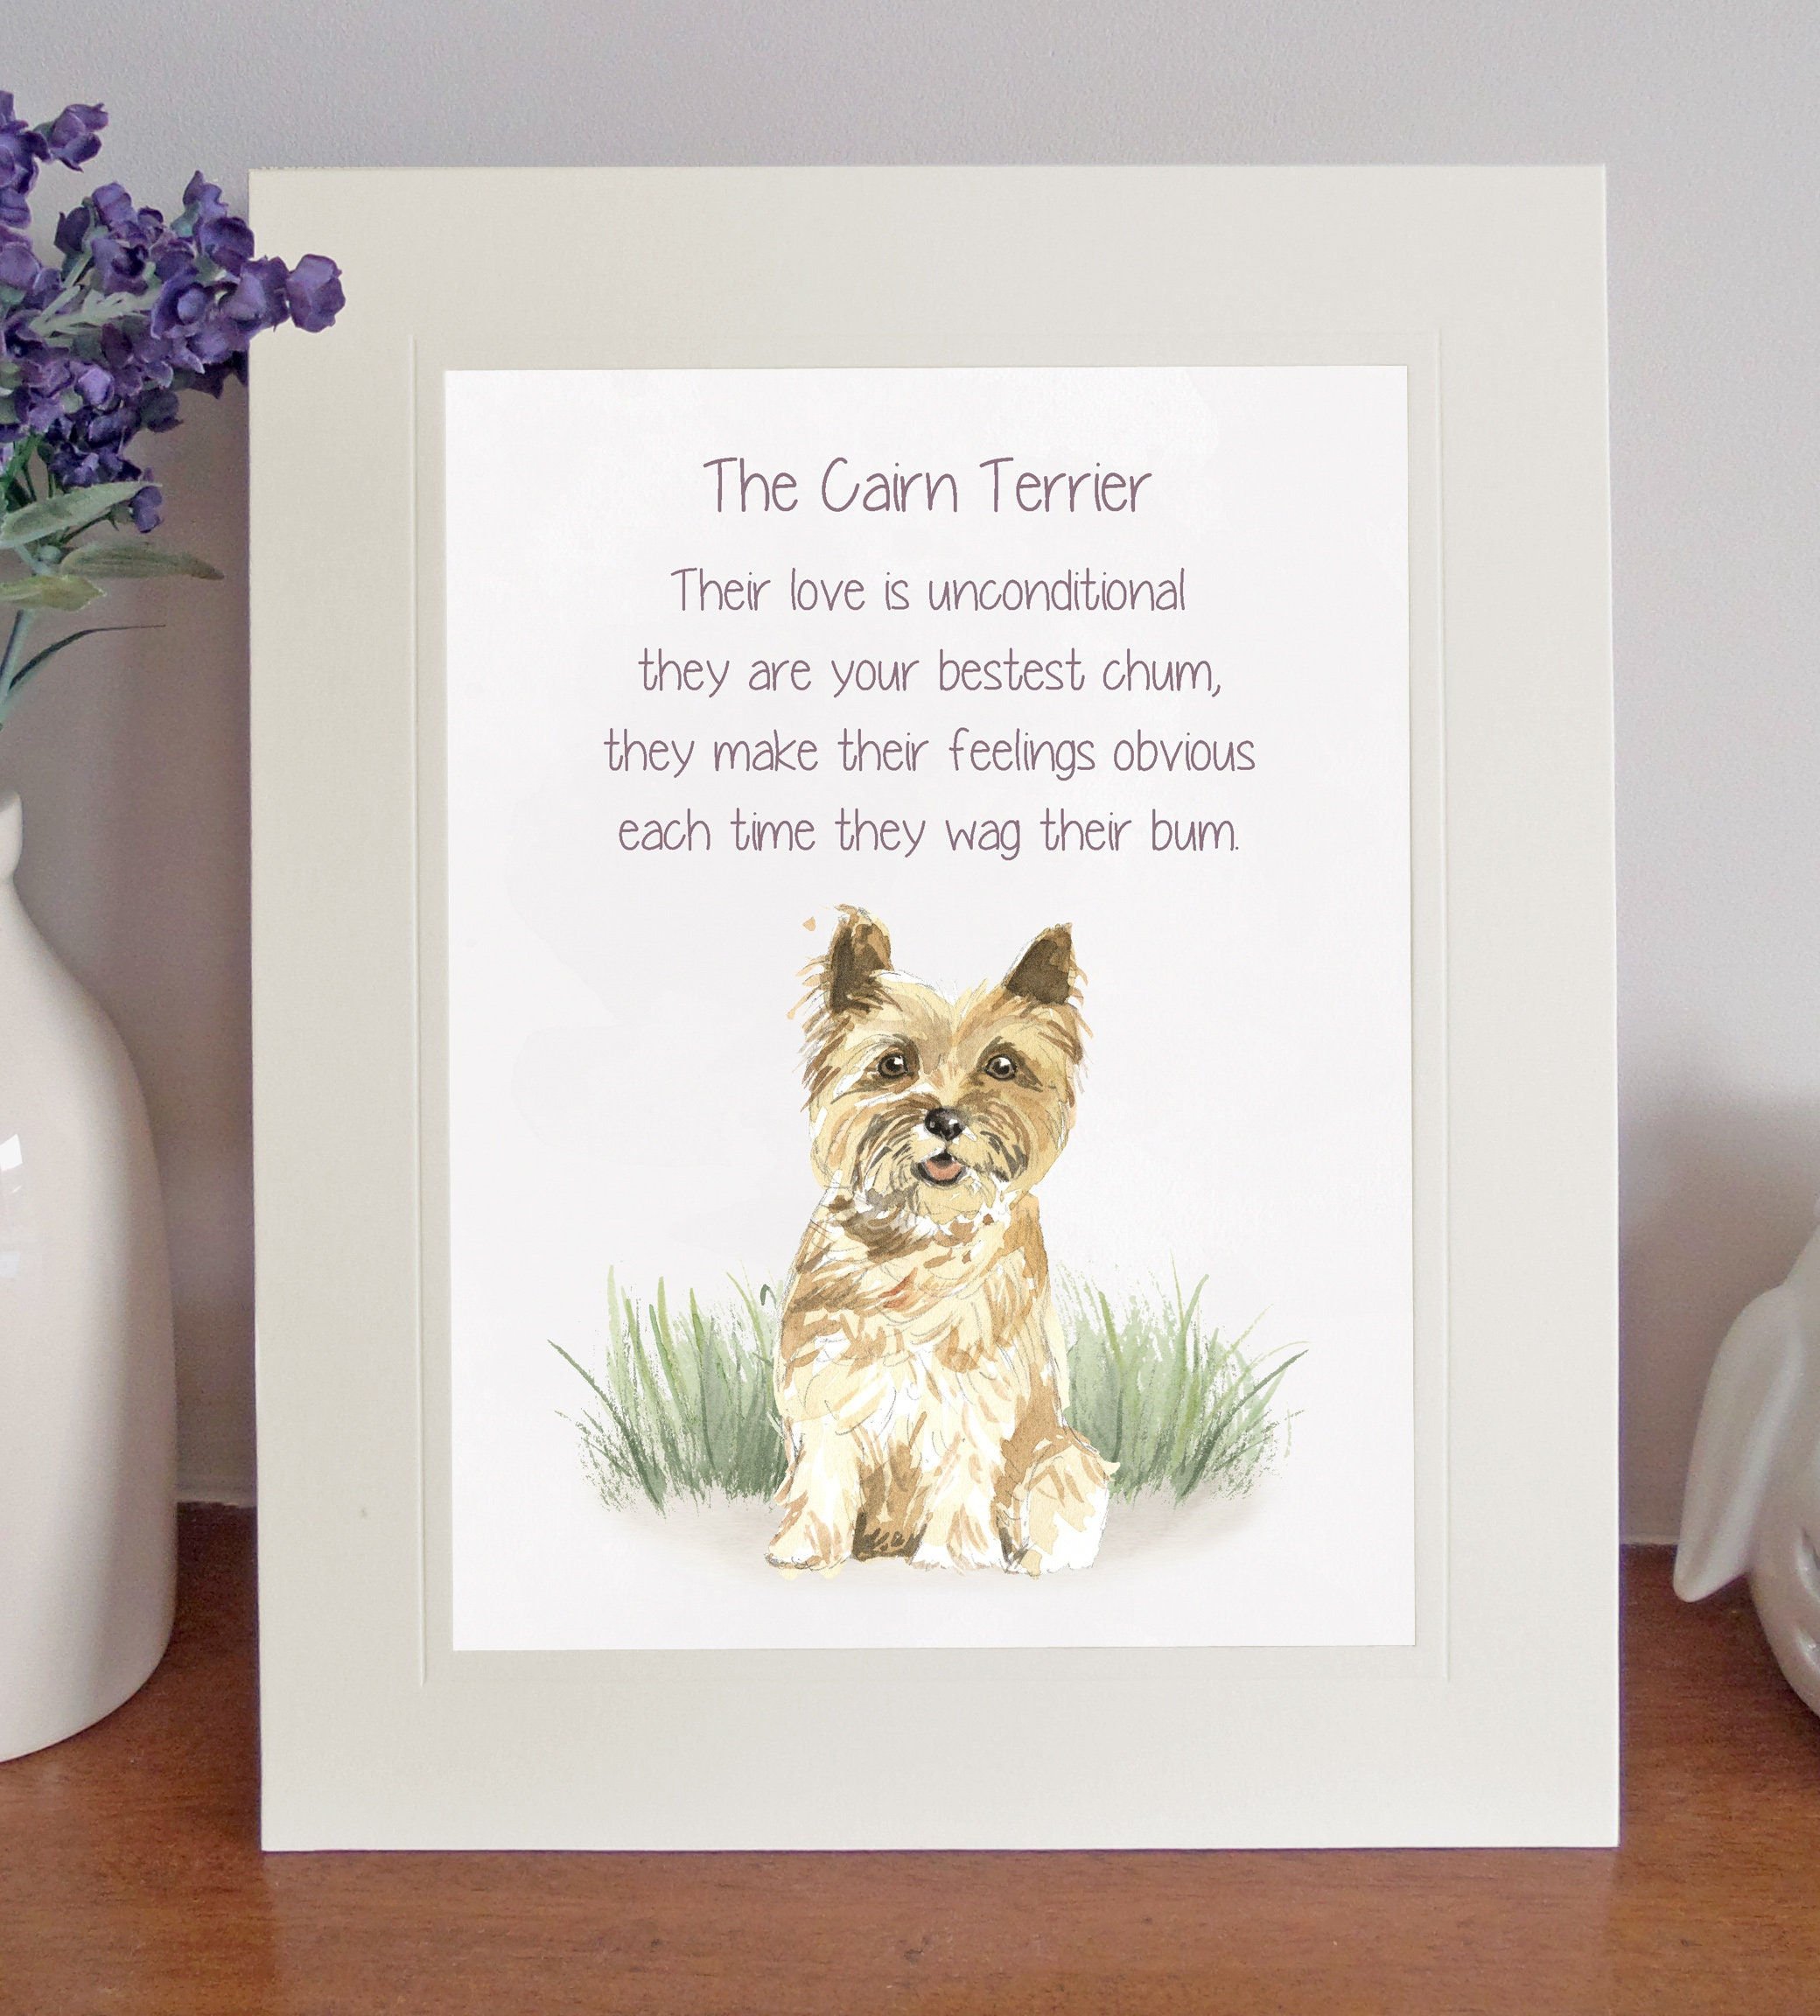 Cairn Terrier BESTEST CHUM Novelty Dog Poem, Free-Standing 8 x 10 Picture,  Lovely 10x8 Watercolour Print, Fun Mothers Day/Fathers Day Gift